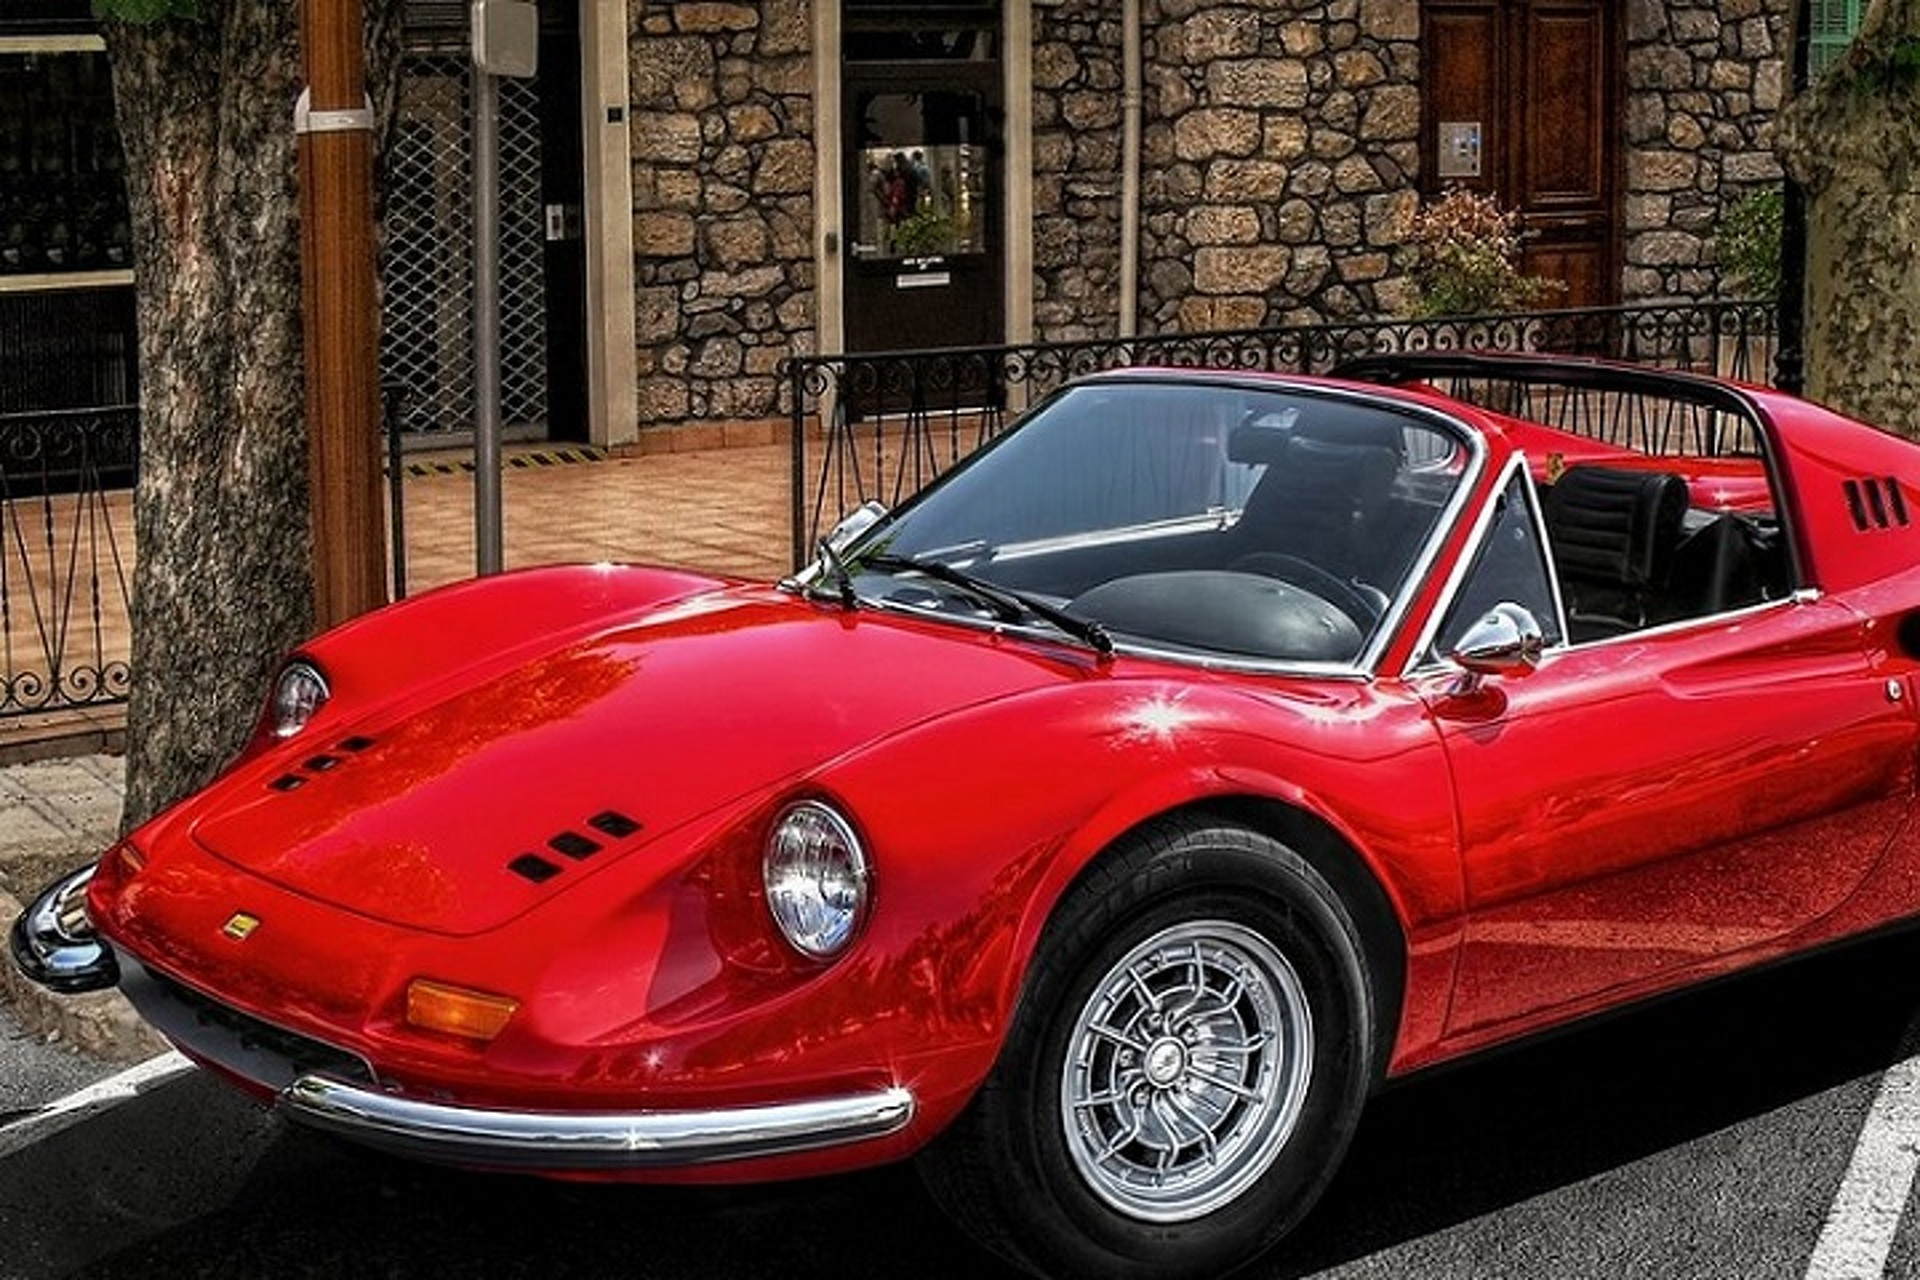 Ferrari Boss Marchionne Says 'The Dino is Coming Back'